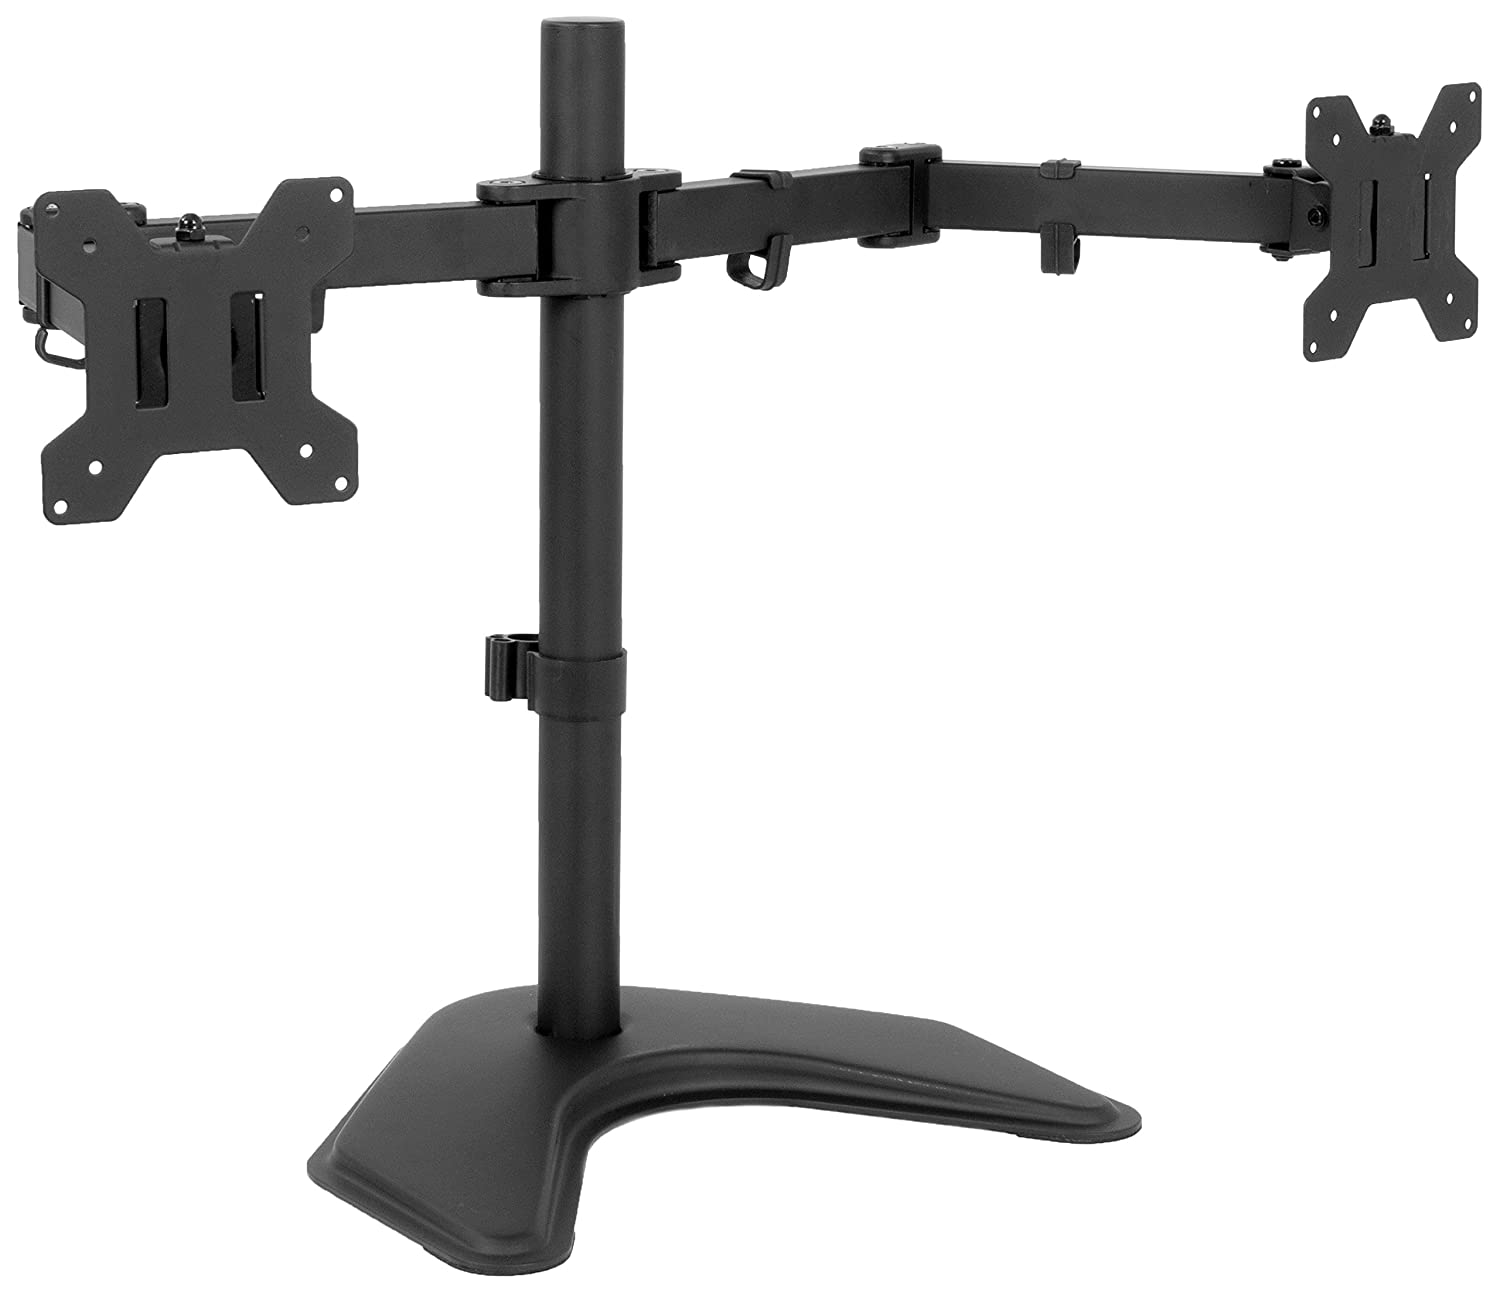 VIVO Full Motion Dual Monitor Free-Standing Desk Stand VESA Mount Double Joints | Holds 13 to 32 Screens (STAND-V102K)